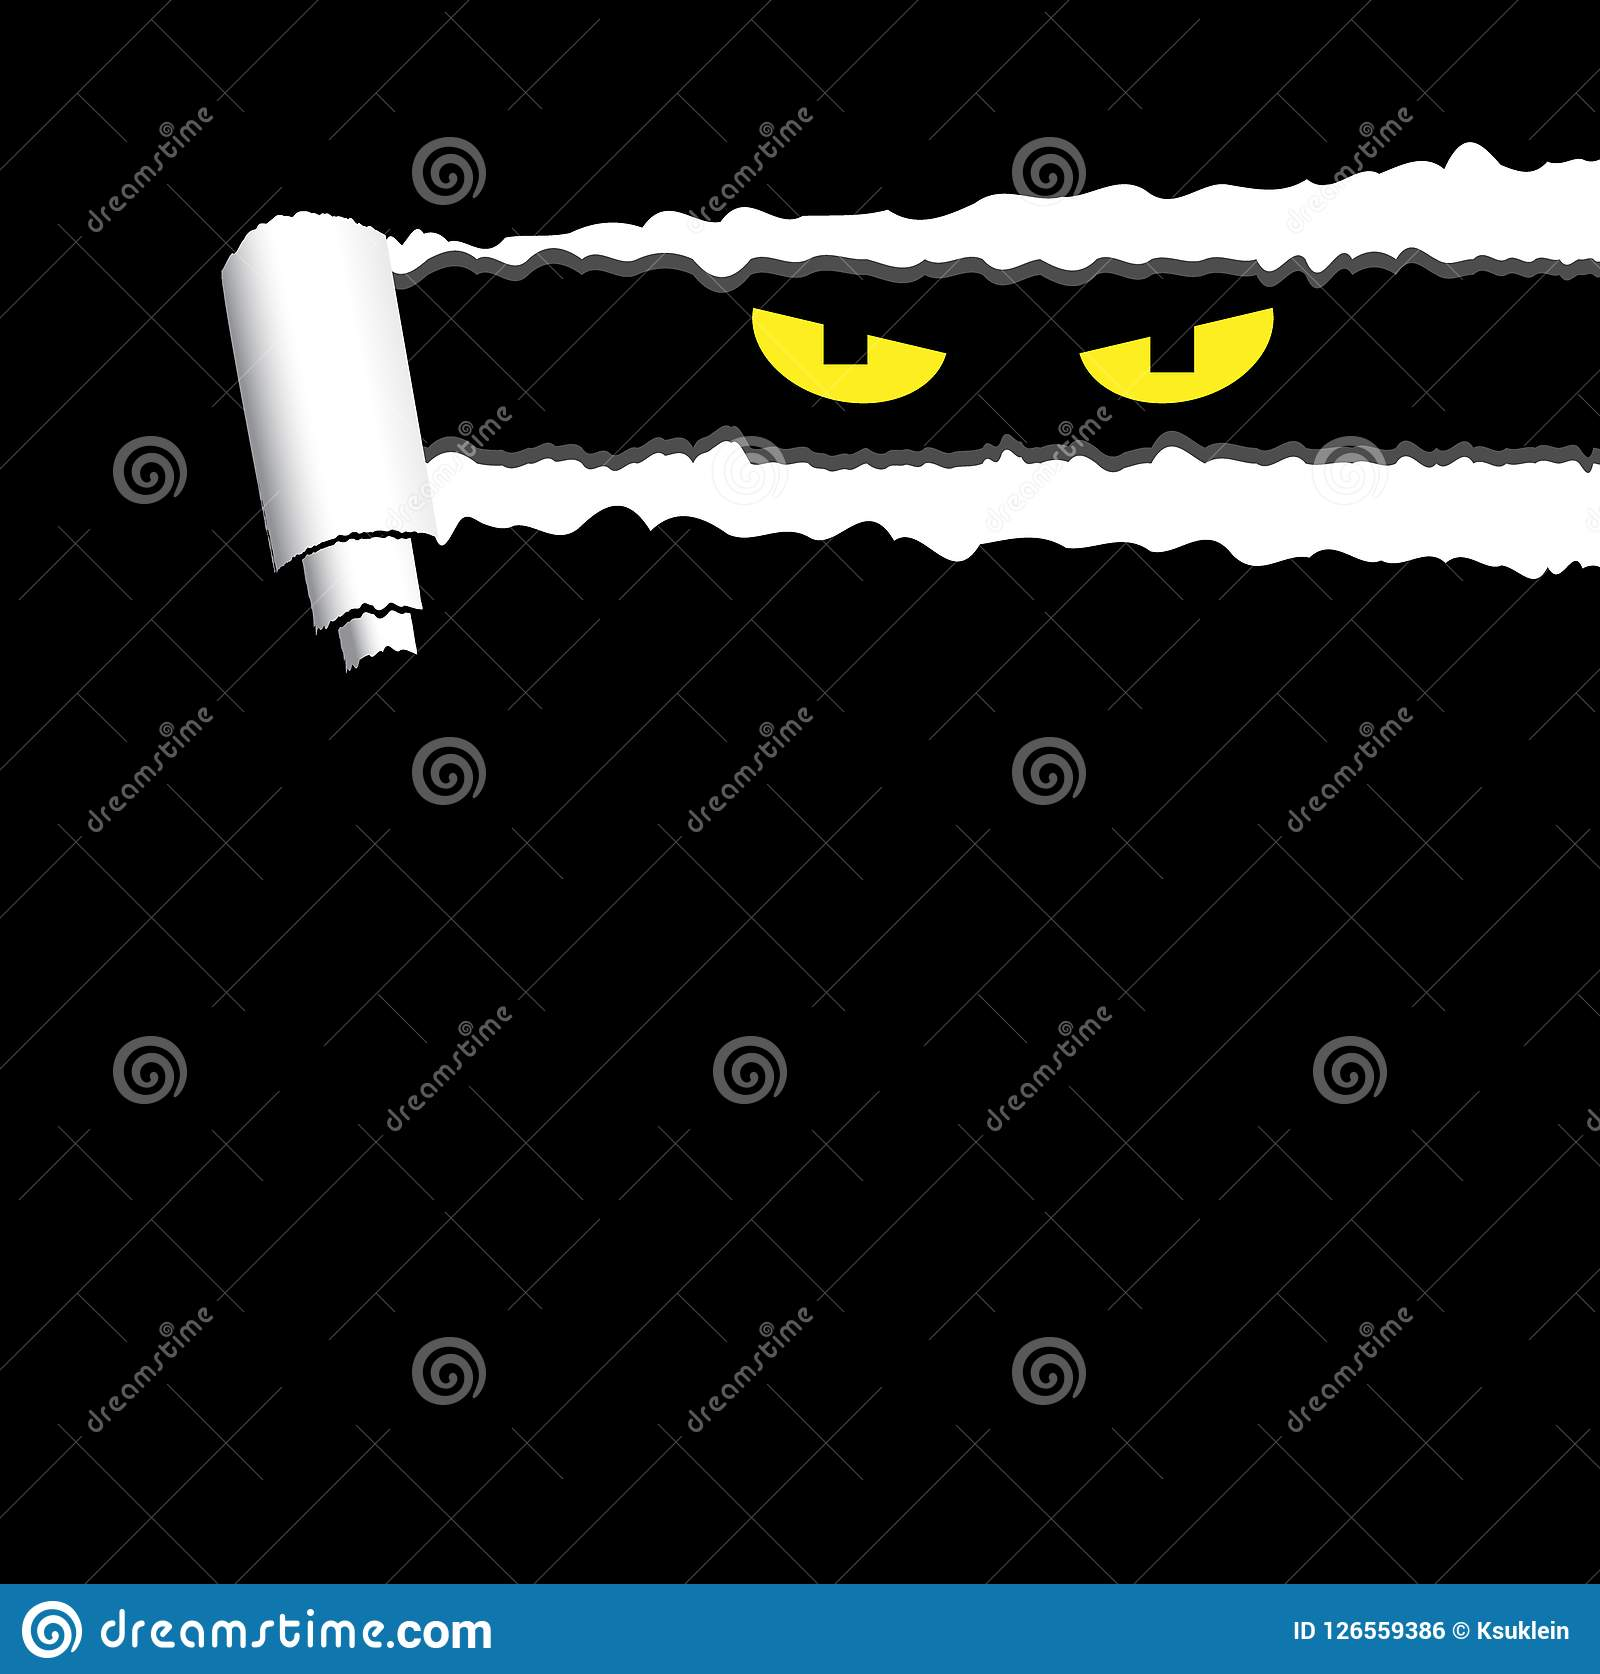 Halloween Creepy Background With Torn Rolled Paper And Spooky Eyes Looking Out